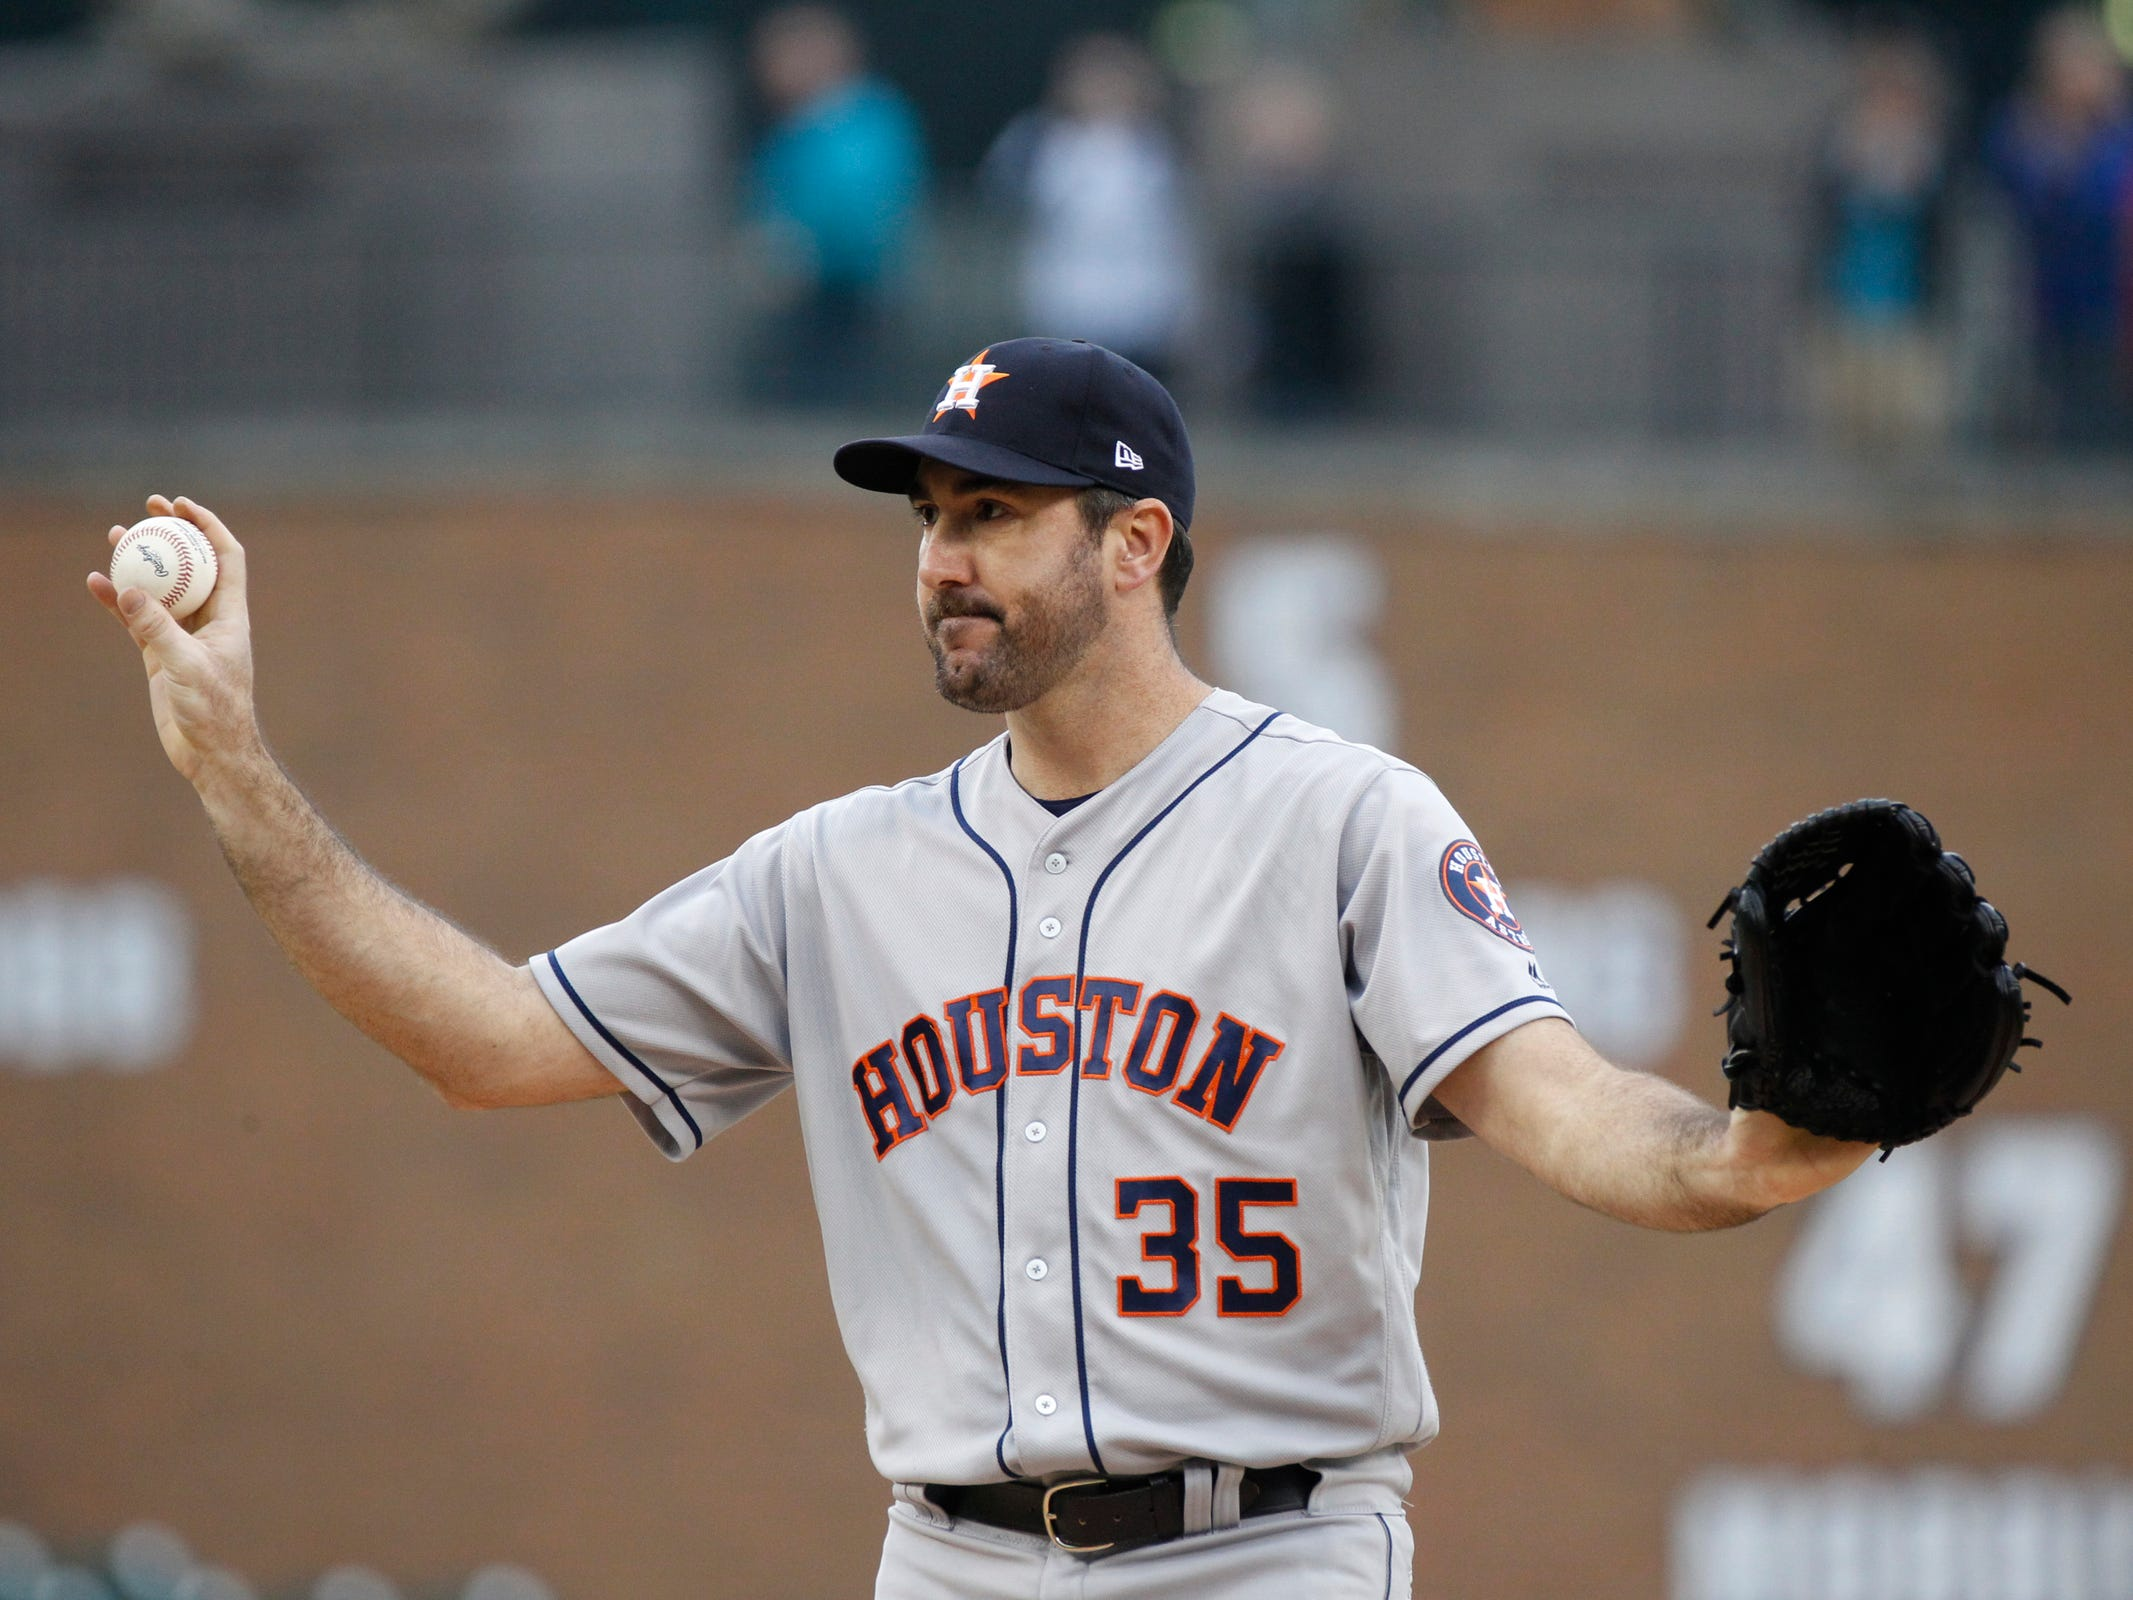 Astros pitcher Justin Verlander waves to his former home crowd as he takes the mound in the first inning as the Detroit Tigers take on the Houston Astros on Monday, Sept. 10, 2018.